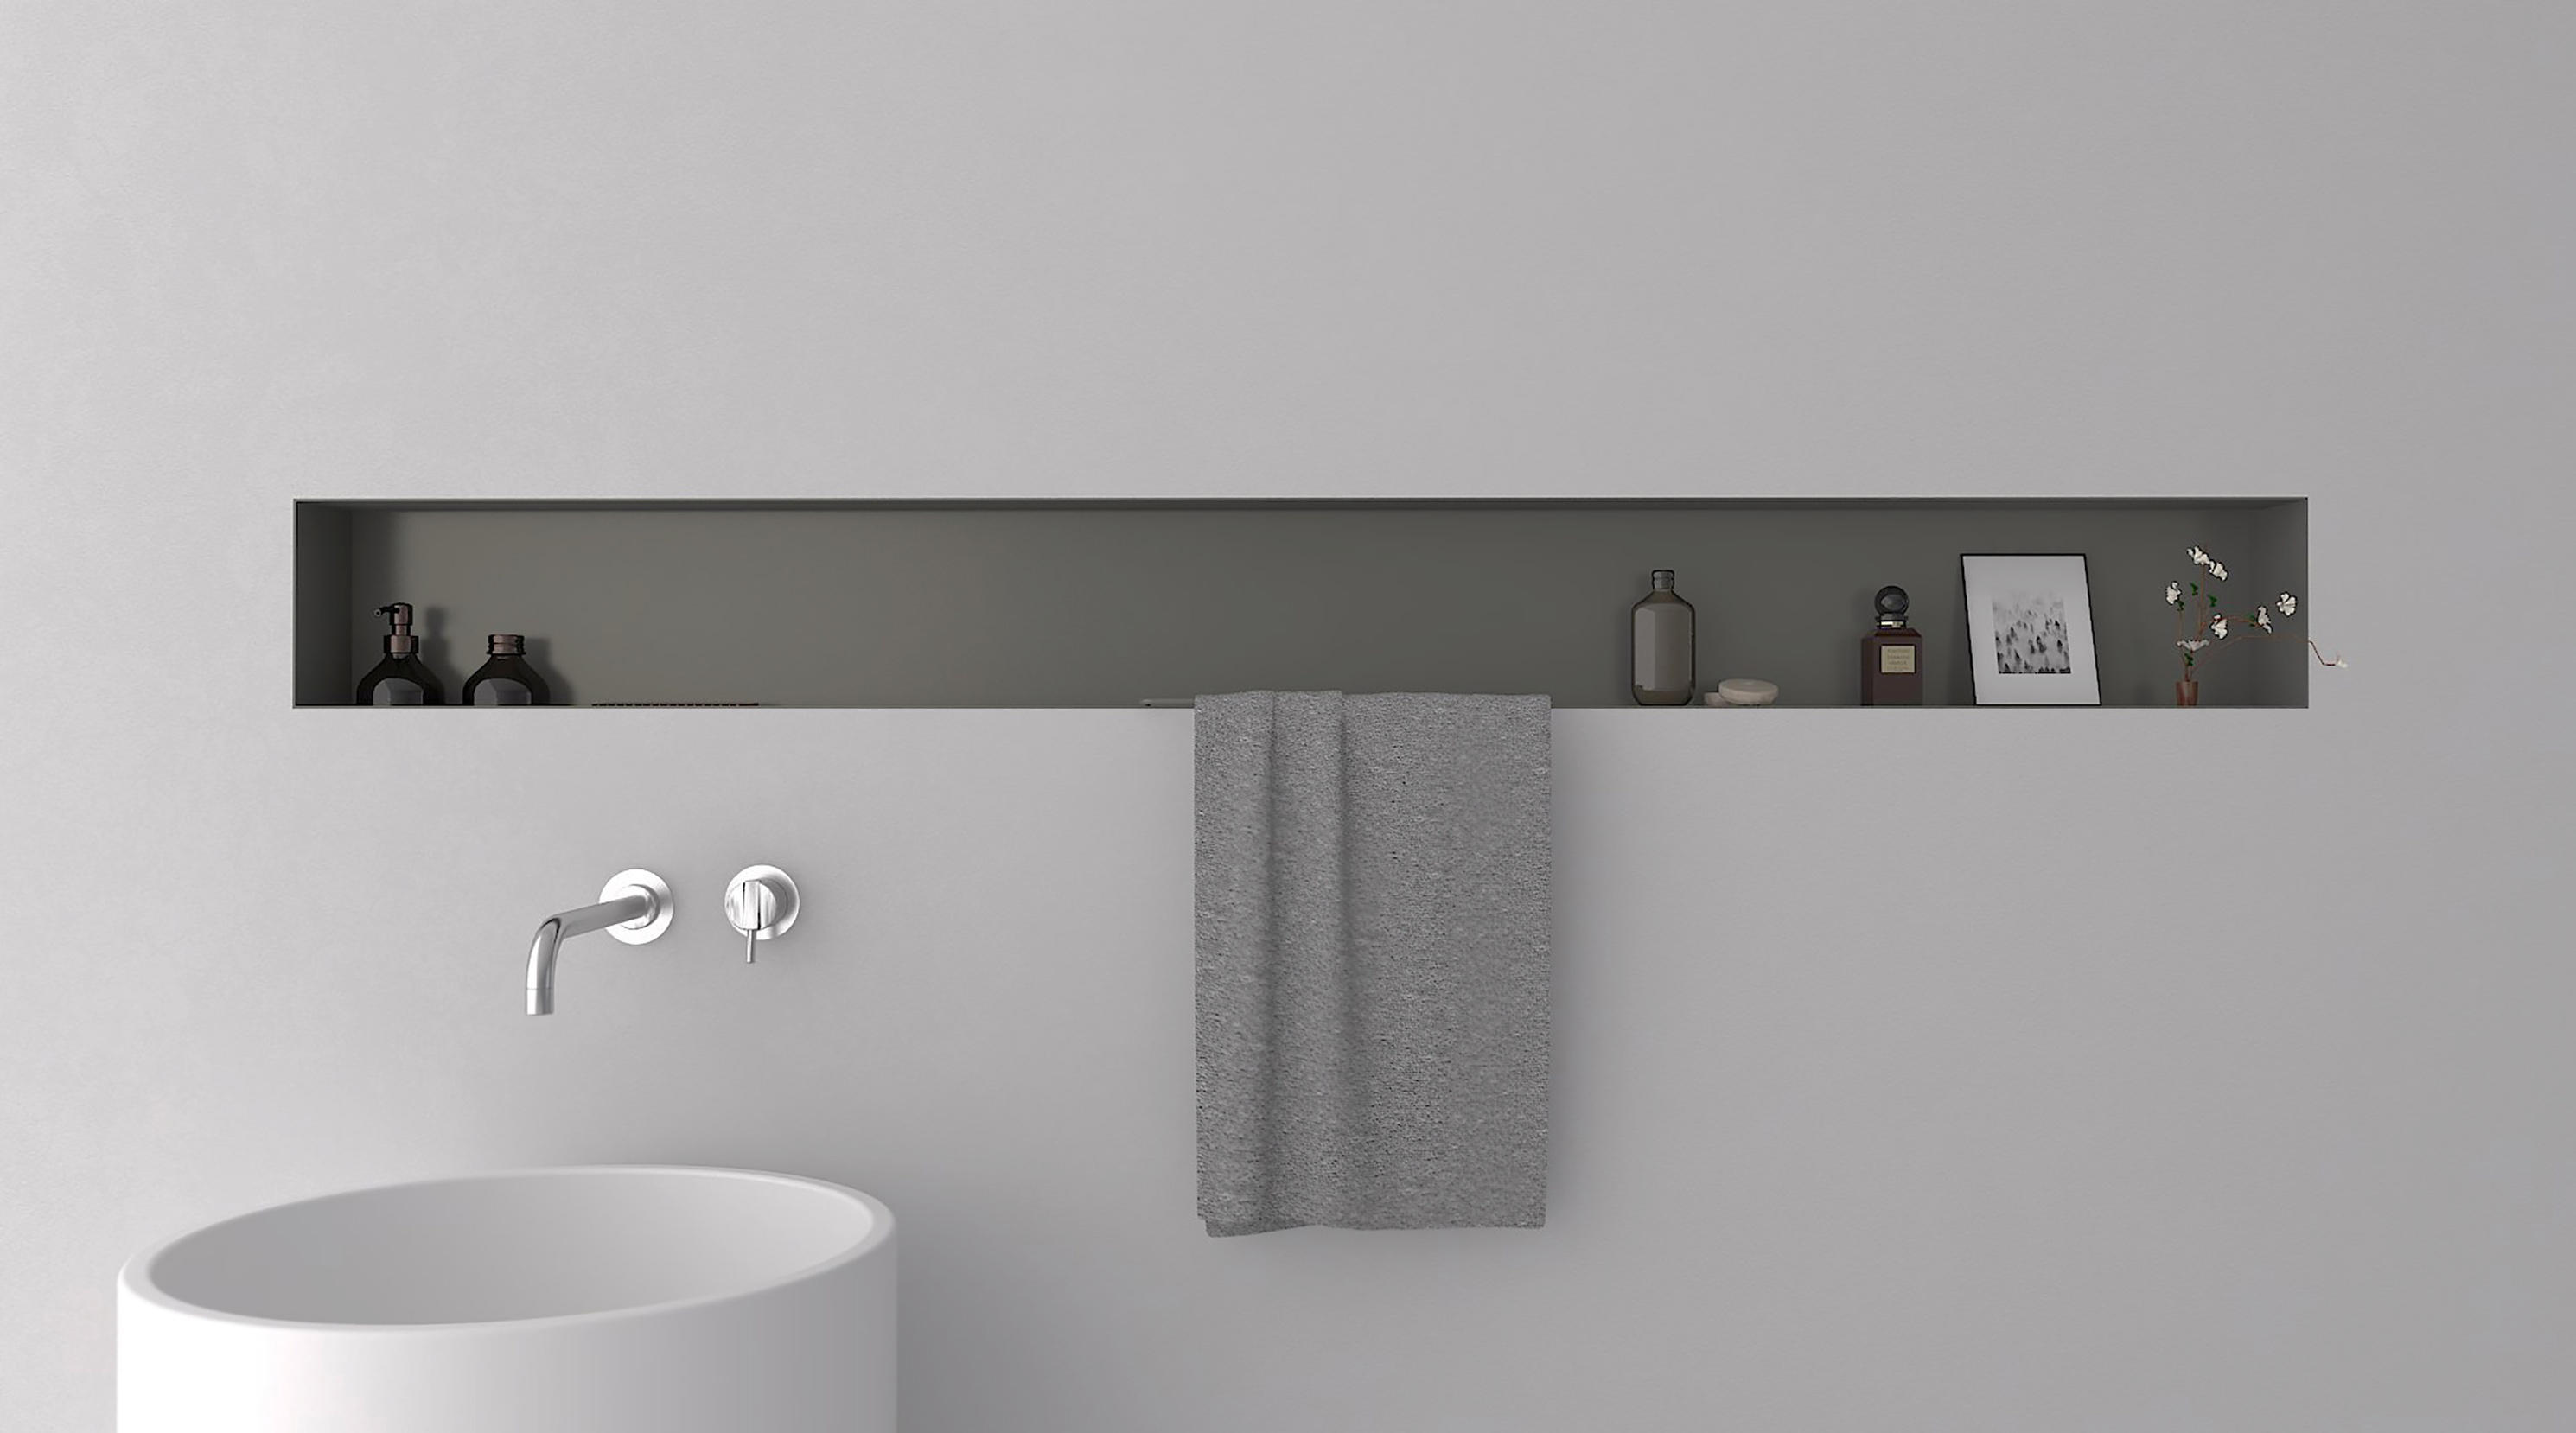 OMBRA - Bath shelving from antoniolupi | Architonic